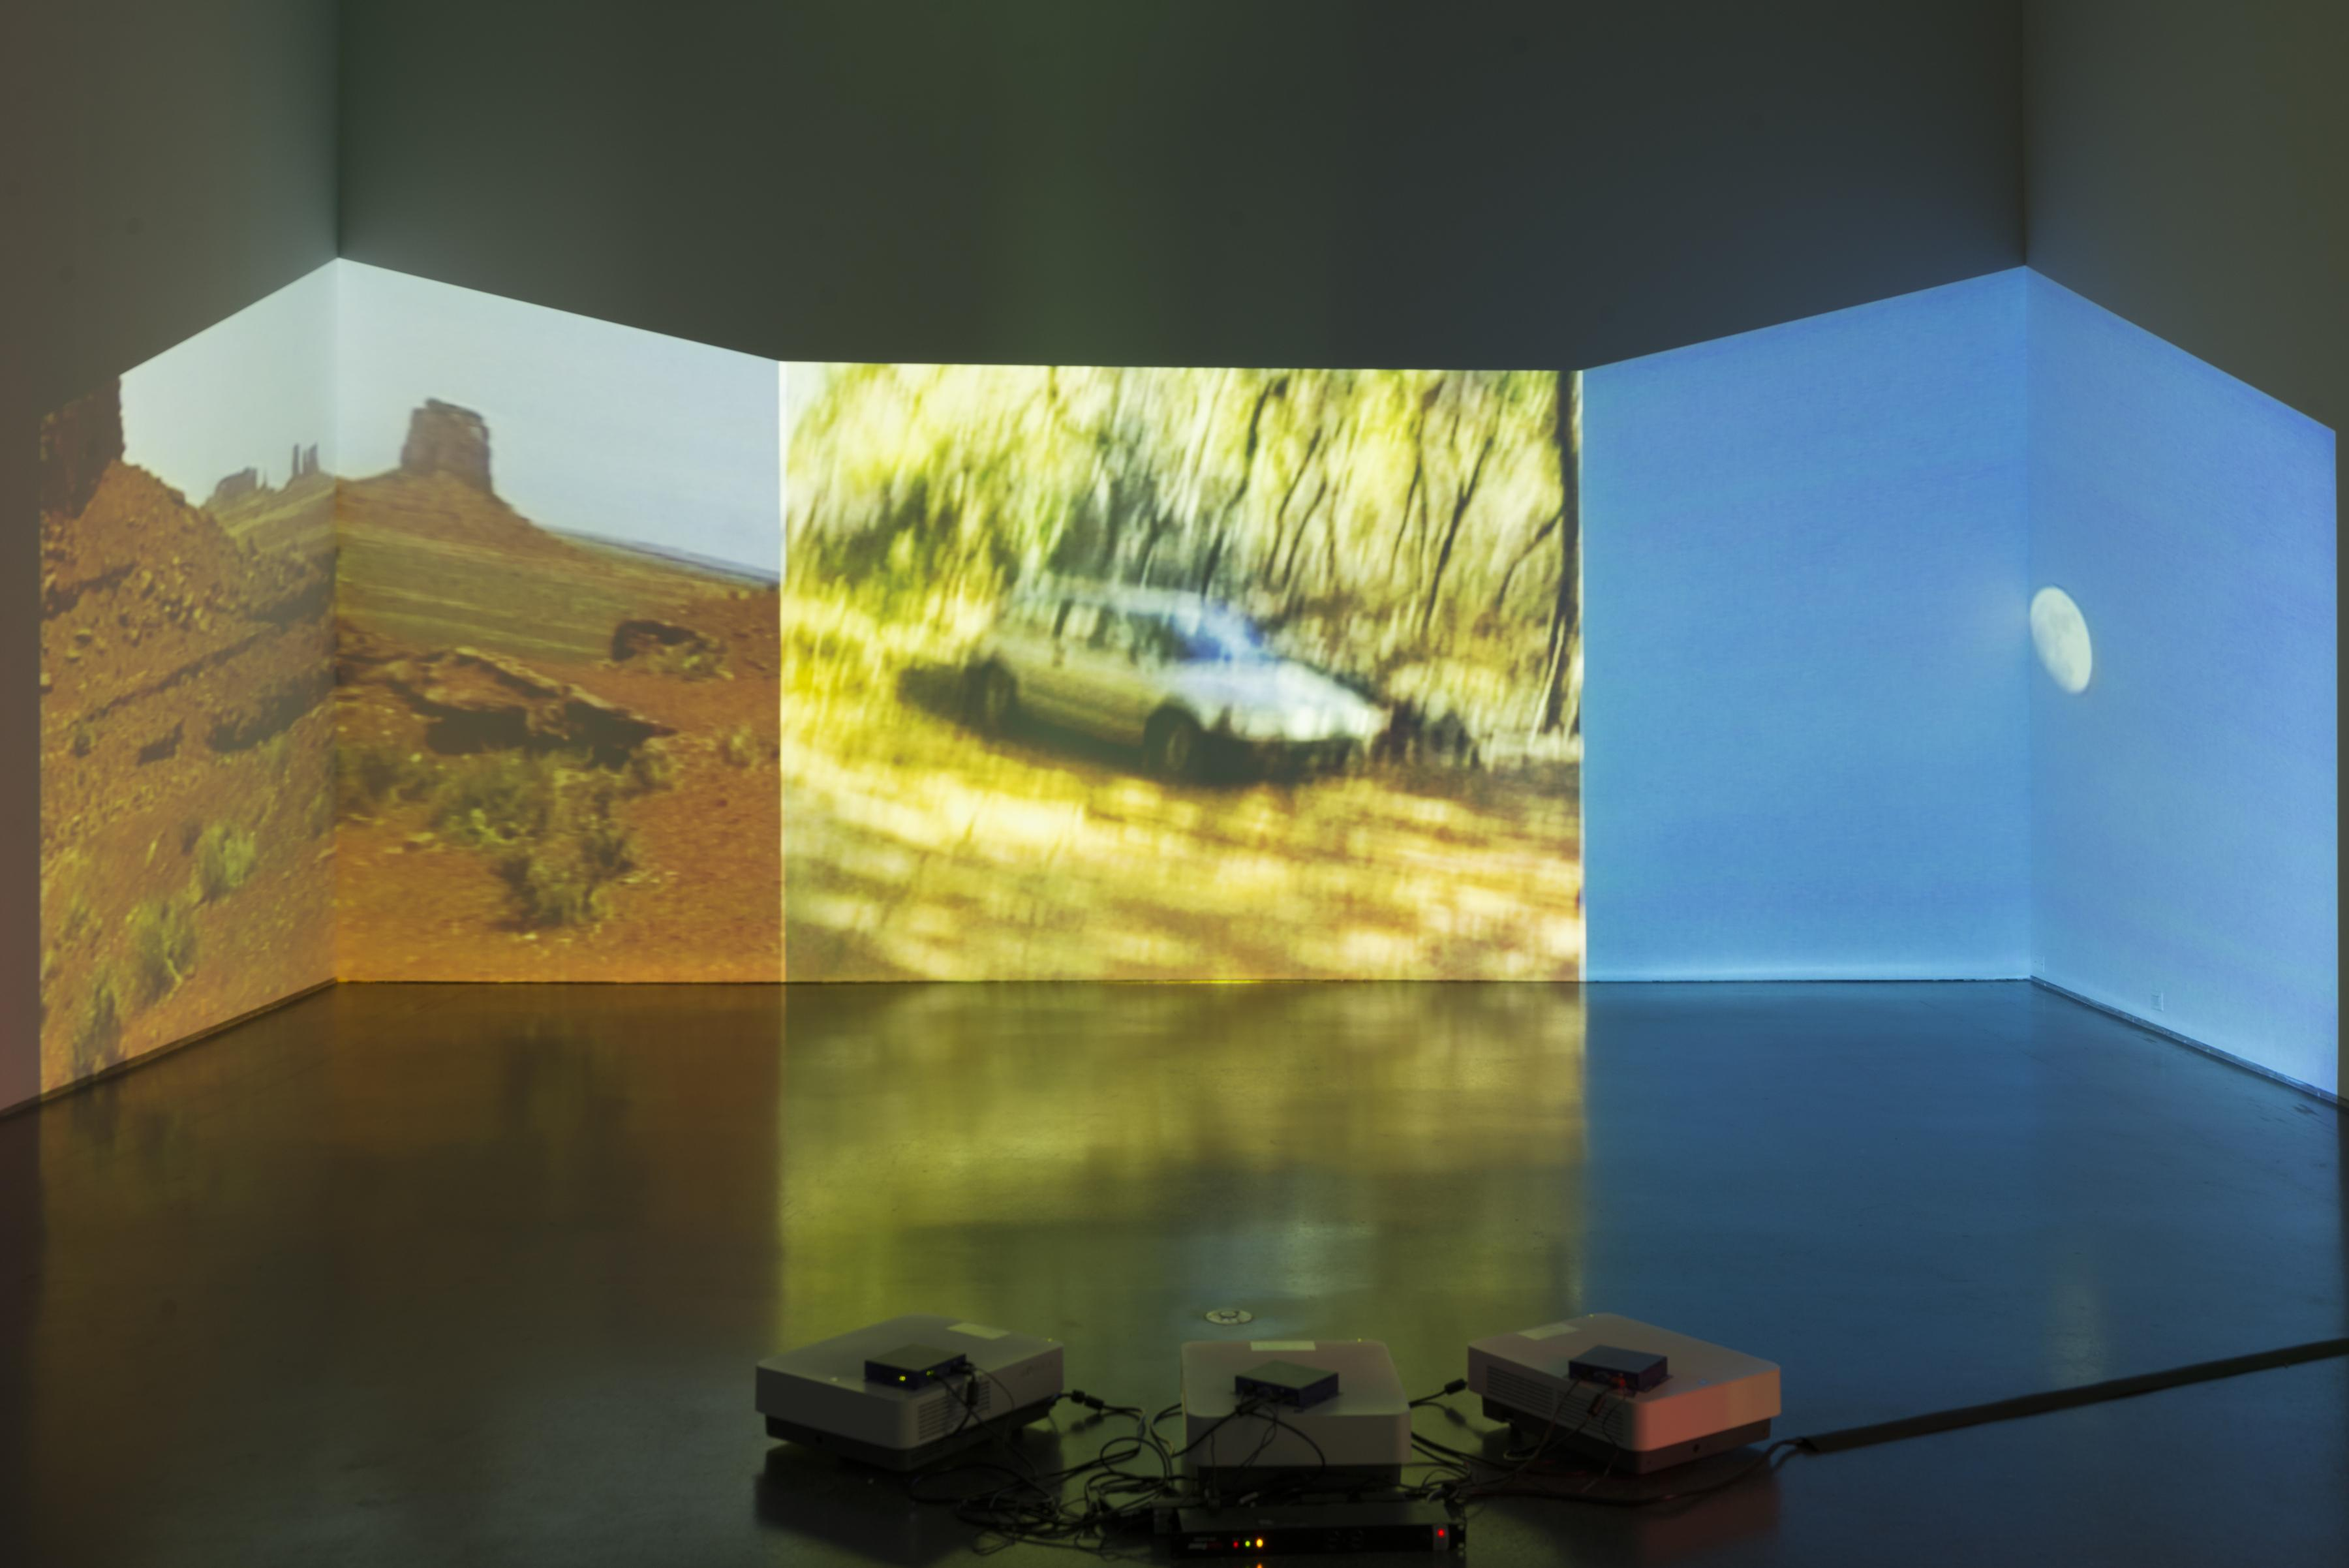 Three projectors on the floor project three different images on the opposite wall: a southwestern desert landscape, a car in golden light, and a small moon on a blue sky. The images are projected on the corners of the room, creating irregular viewing frames.